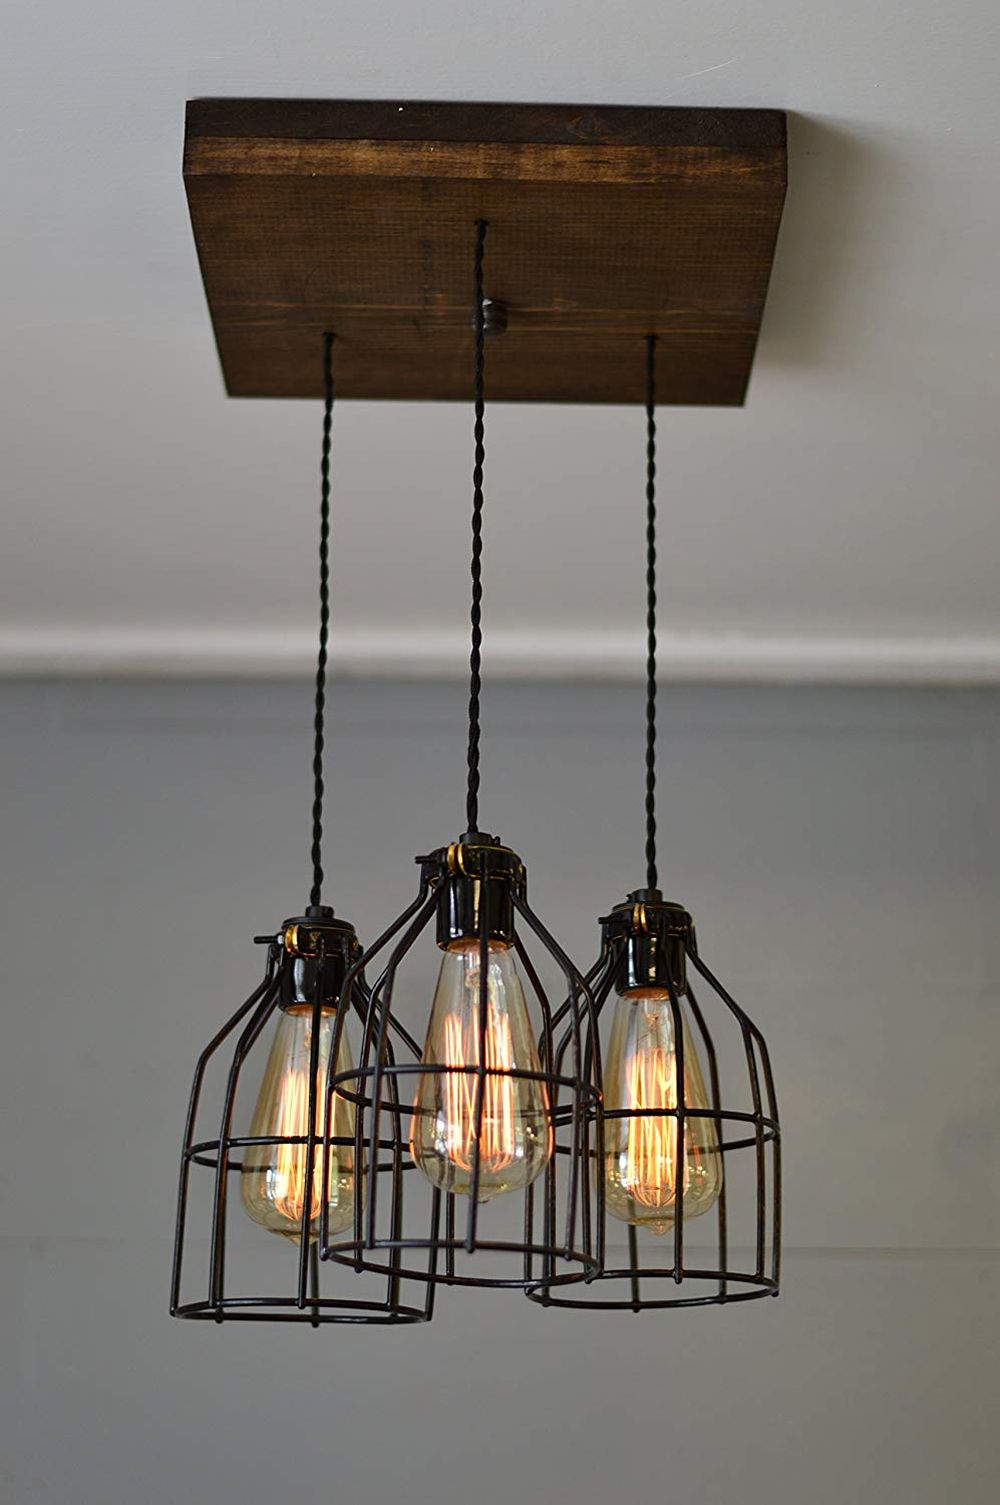 1572953141 457 25 farmhouse lighting ideas for warm and homely decors - 25 Farmhouse Lighting Ideas For Warm And Homely Decors